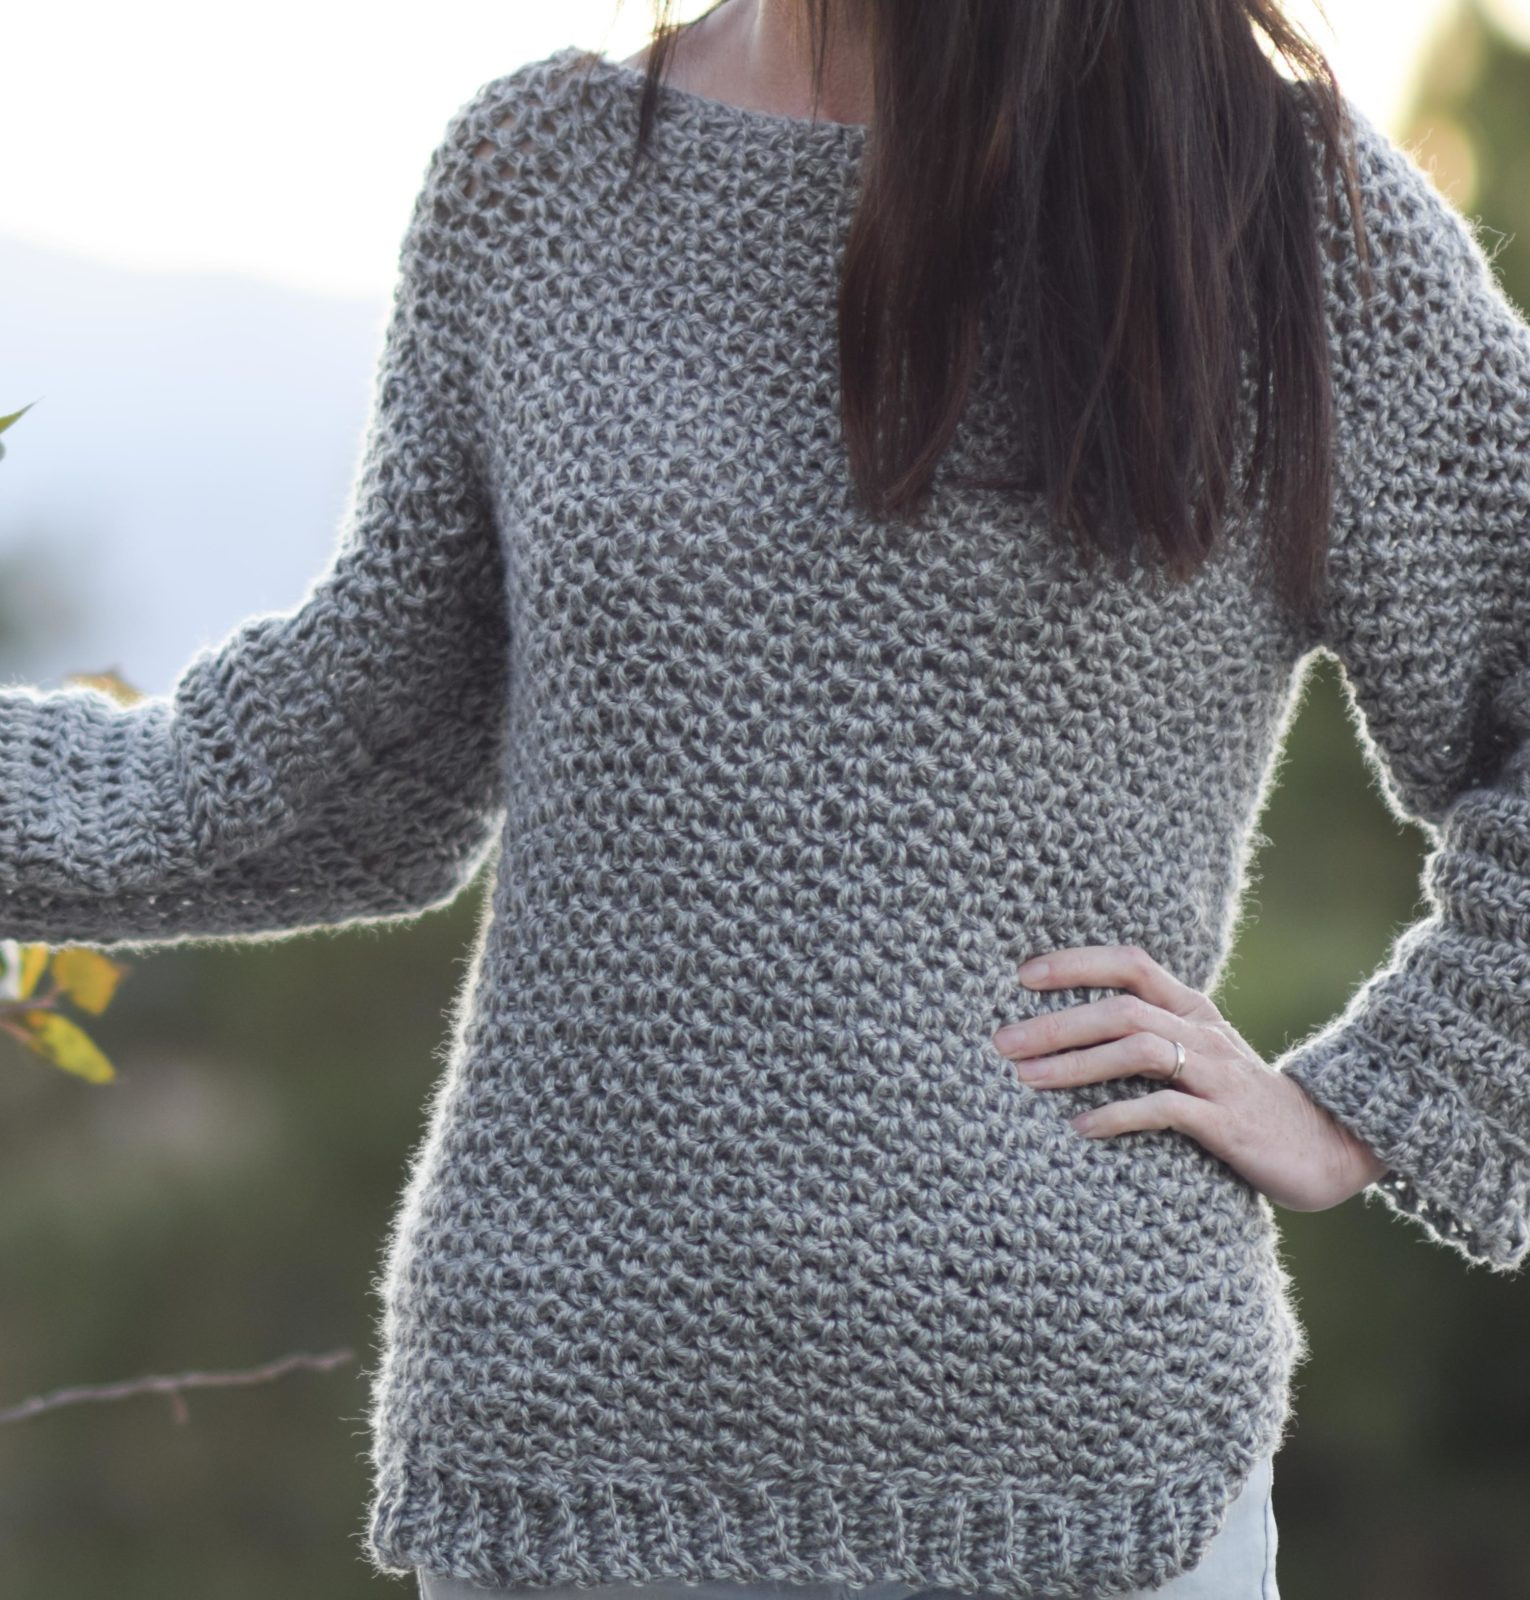 Crochet Sweaters New Free Crochet Patterns that Look Knit Sewrella Of Fresh 50 Images Crochet Sweaters